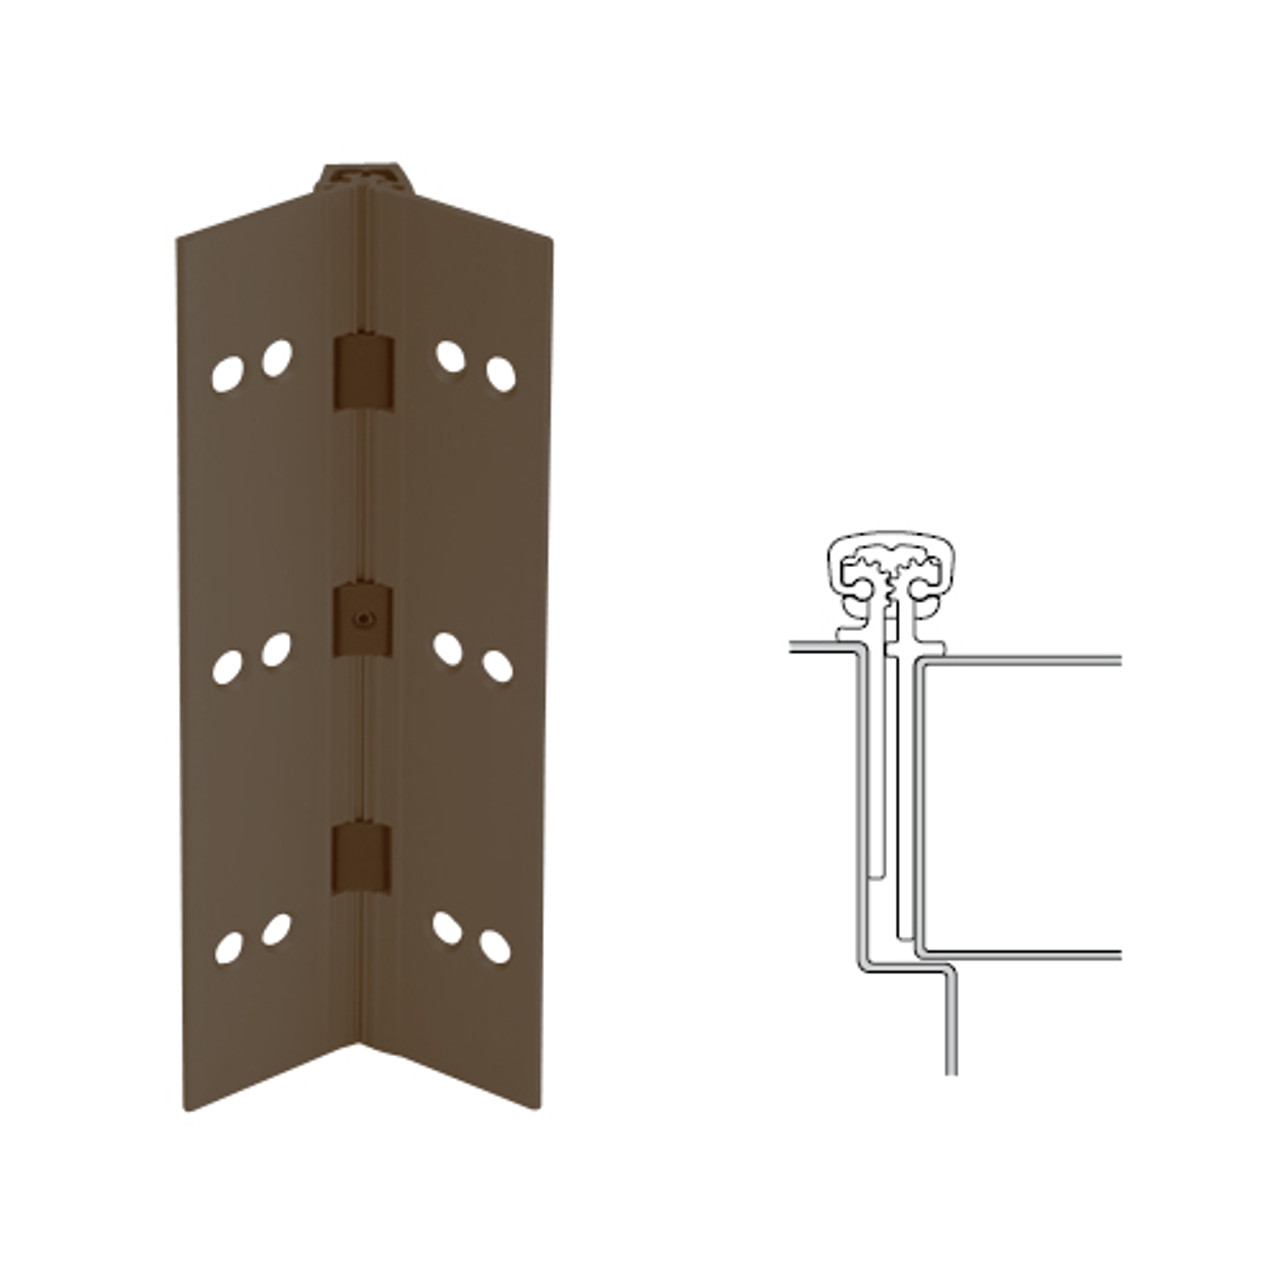 026XY-313AN-120-SECHM IVES Full Mortise Continuous Geared Hinges with Security Screws - Hex Pin Drive in Dark Bronze Anodized